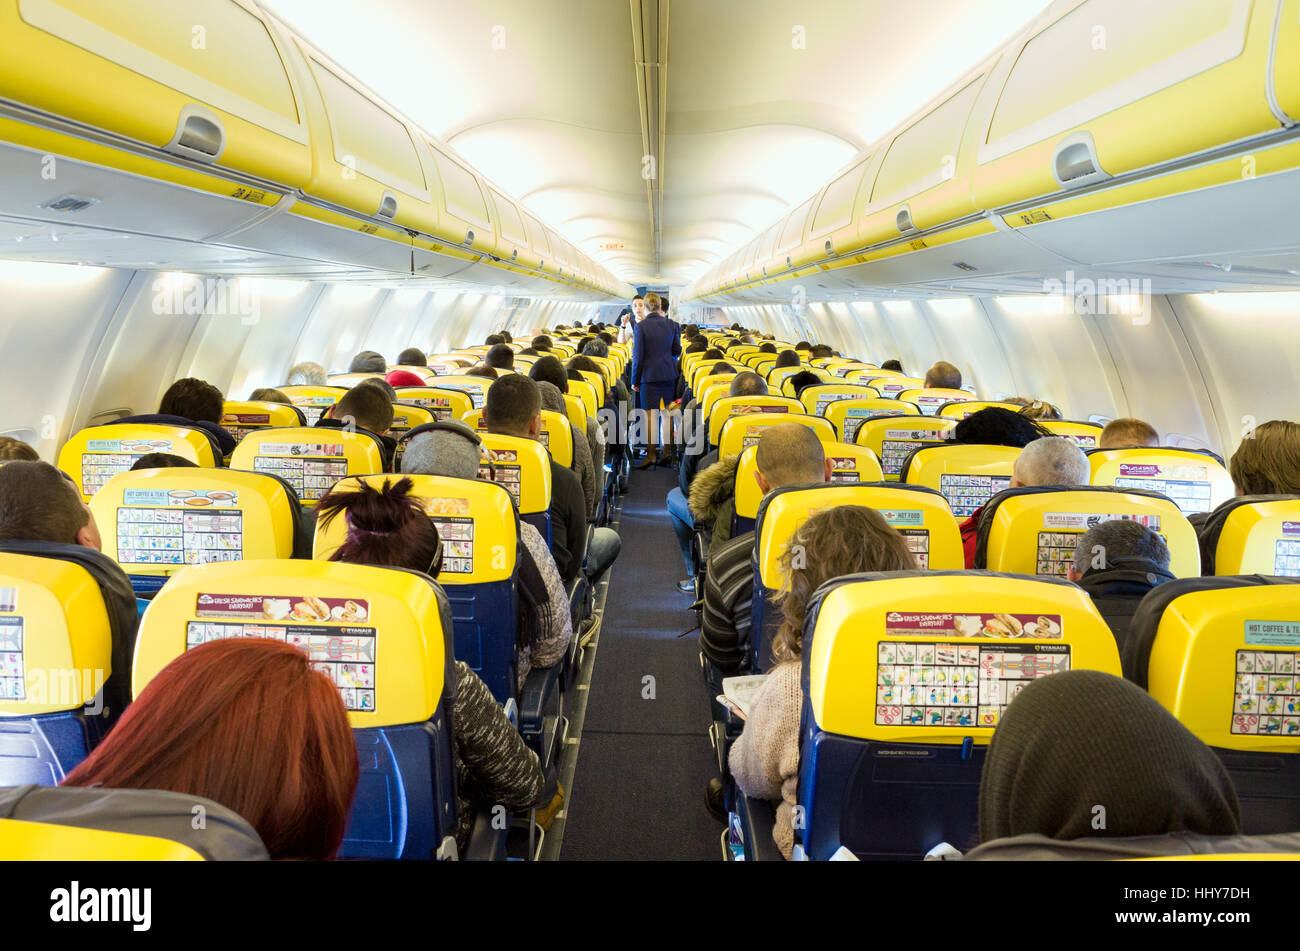 Interior of ryanair cabin in flight stock photo royalty for Interieur avion ryanair